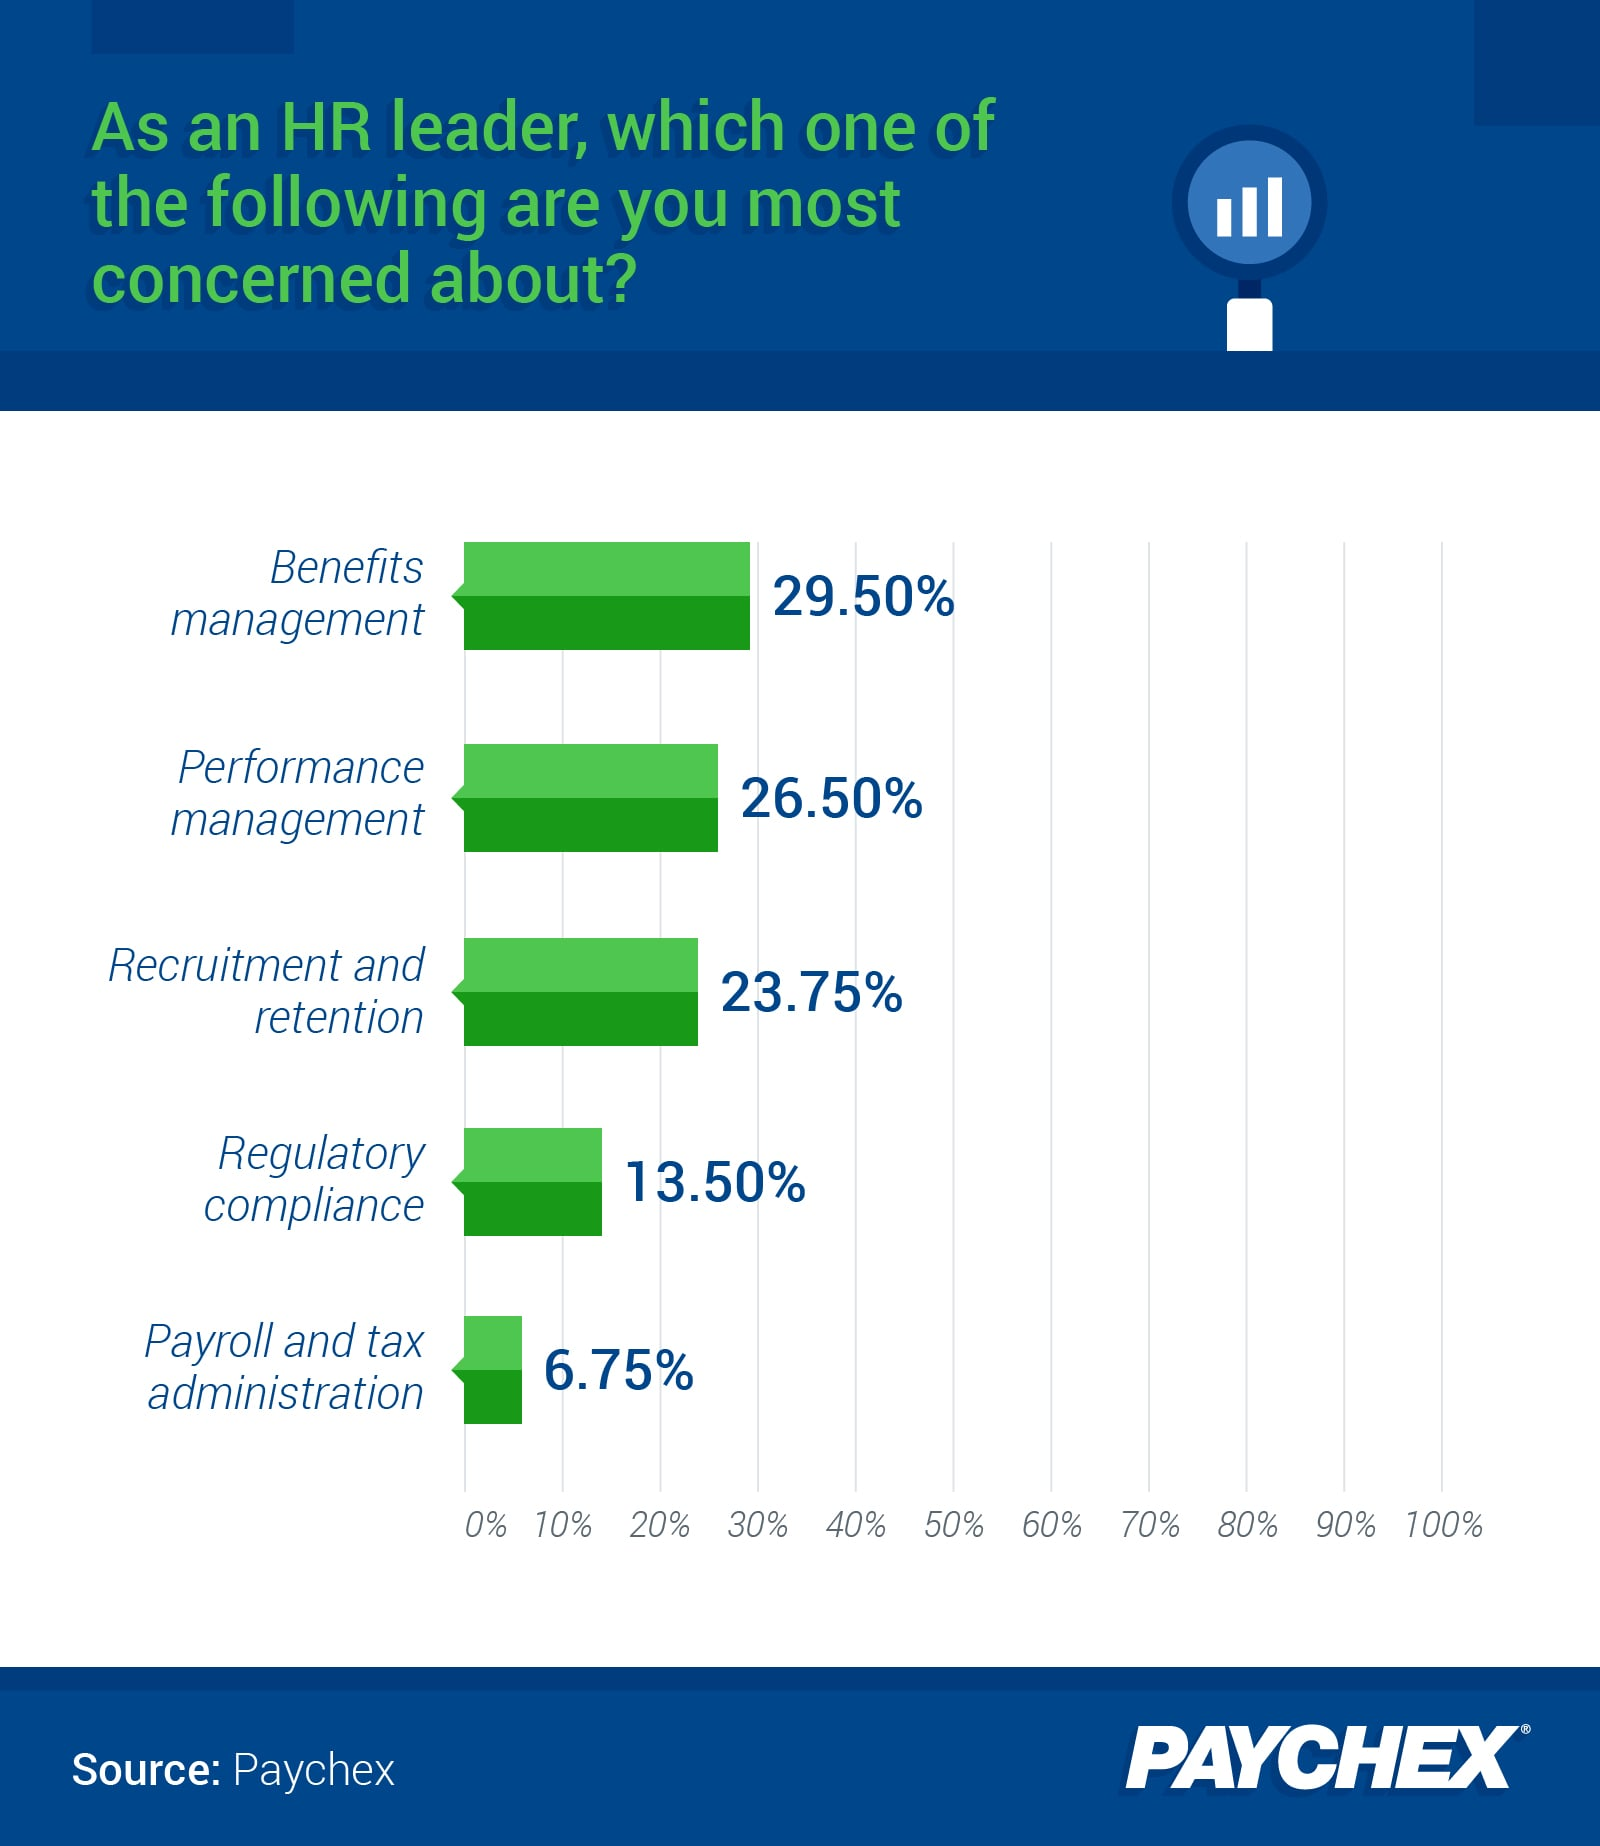 A chart showing which HR issue respondents were most concerned with.